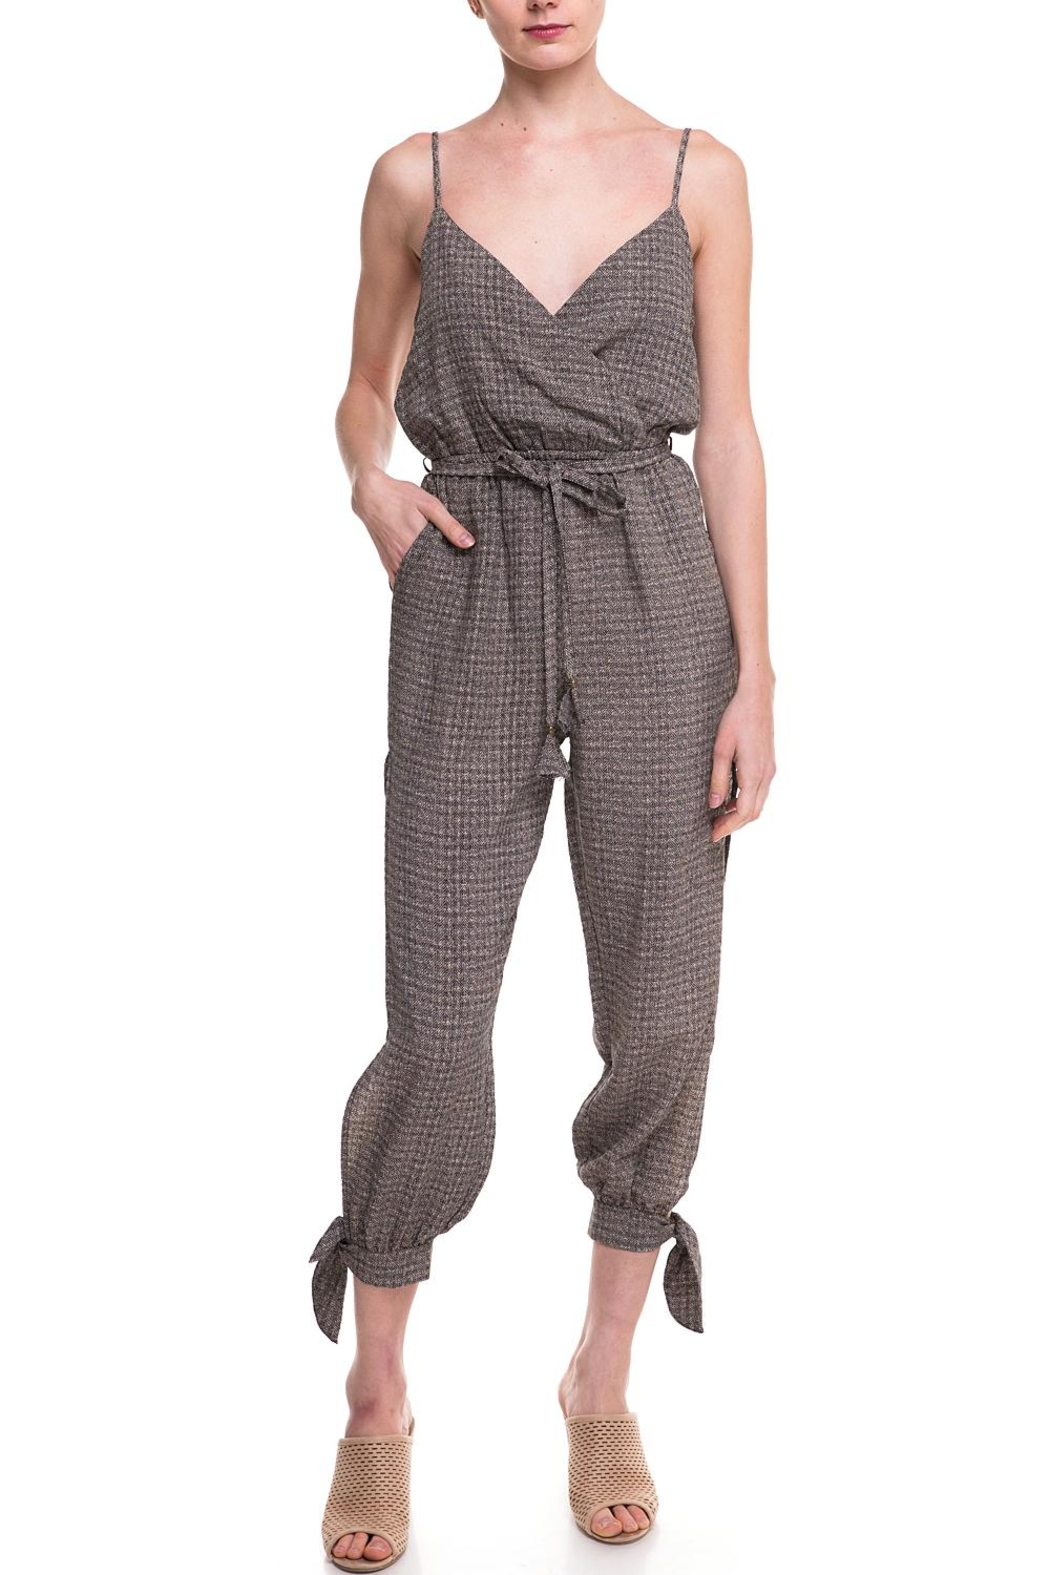 b0ec4b5d39e dress forum Open Leg Jumpsuit from New York by Dor L Dor — Shoptiques